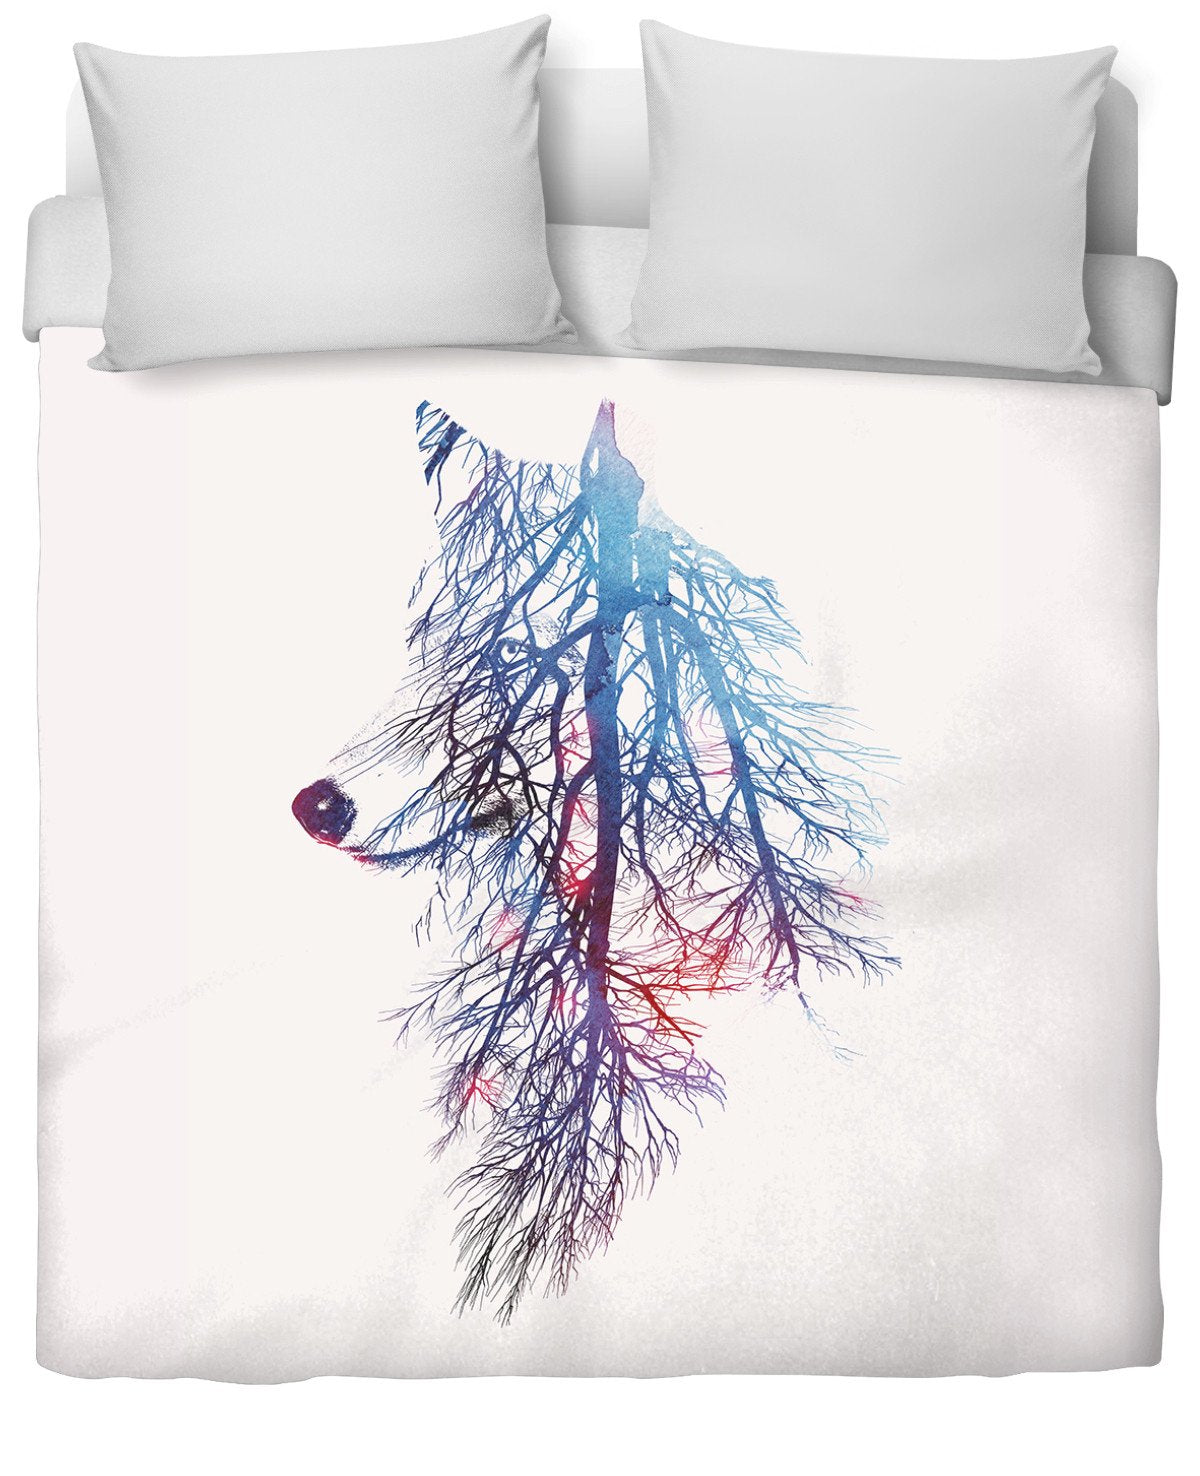 My roots Duvet Cover